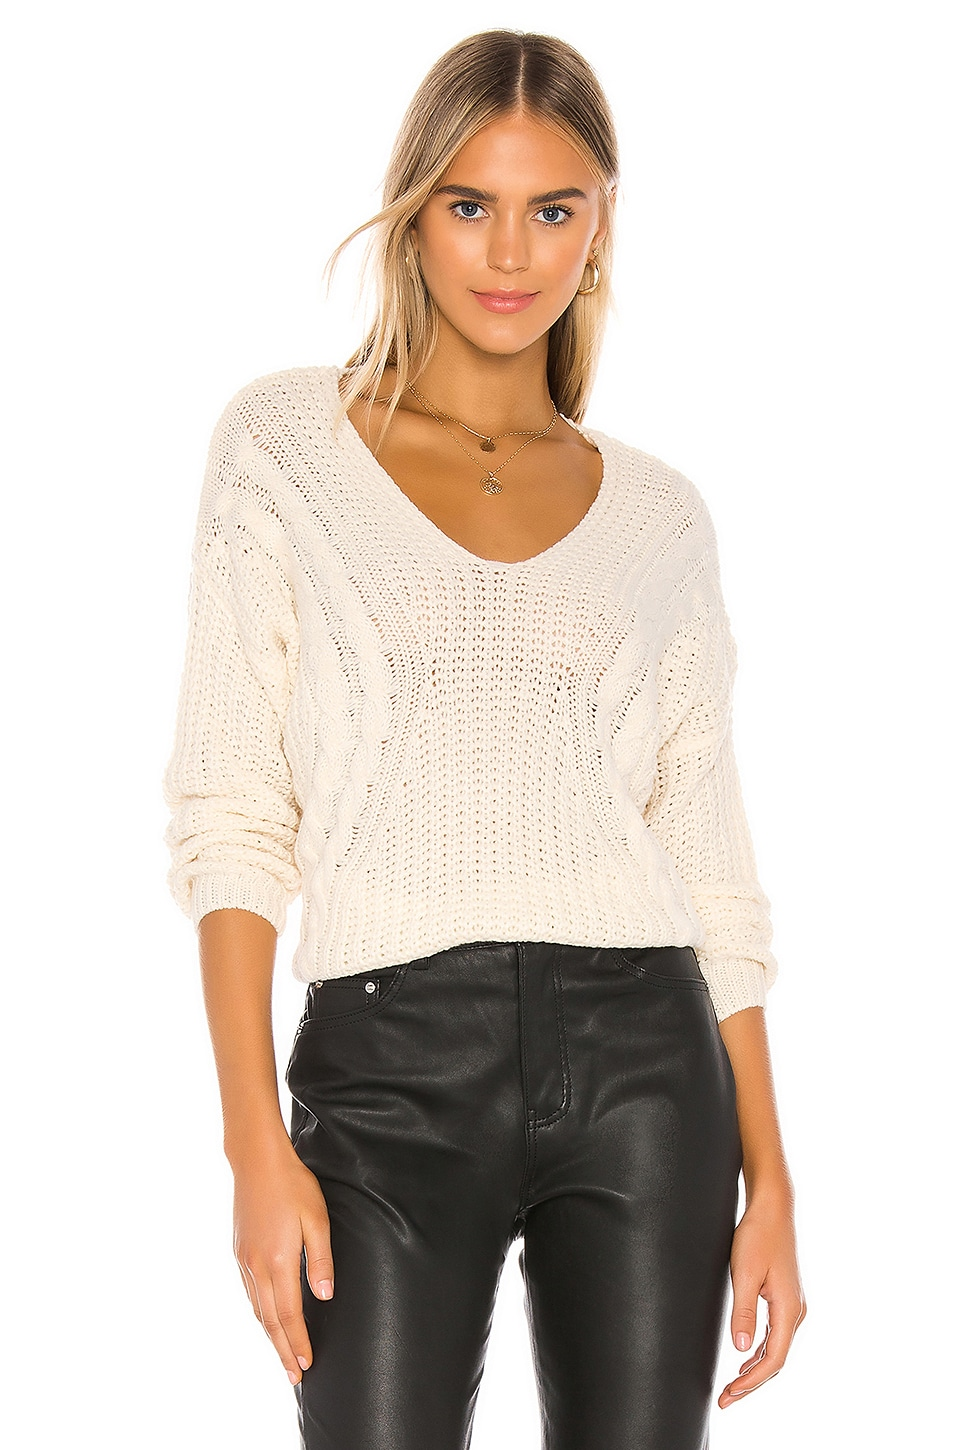 HEARTLOOM Evon Sweater in Ivory